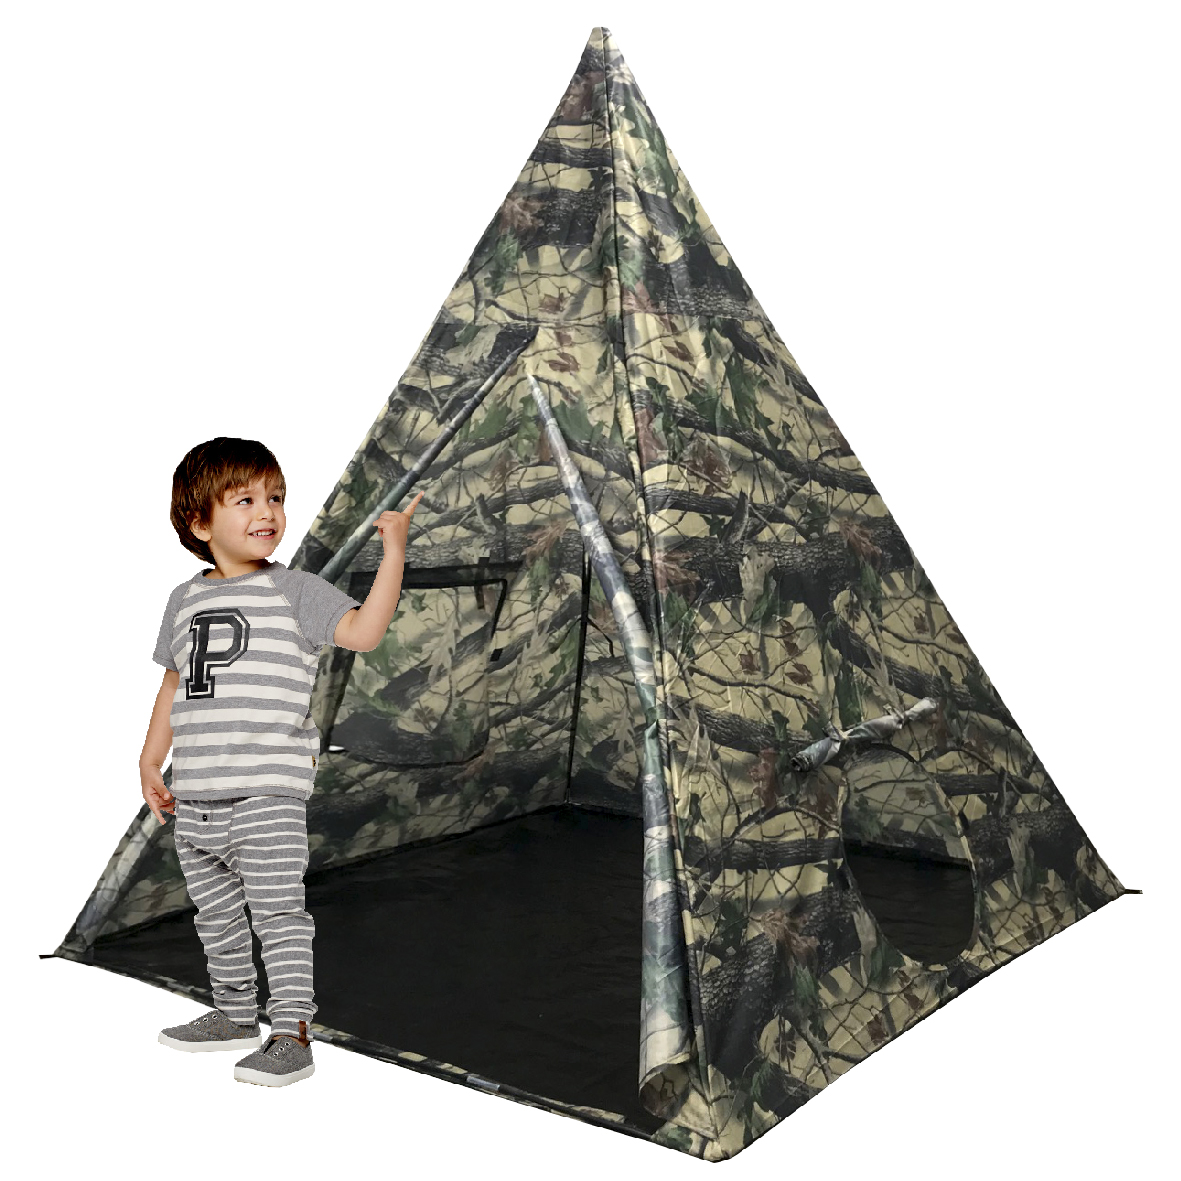 EasyGoProducts 6 Feet High 5-Sided Durable Teepee Kids Tent – Toddlers – Adults – Dogs – Indoor - Outdoor Tee Pee Tent w